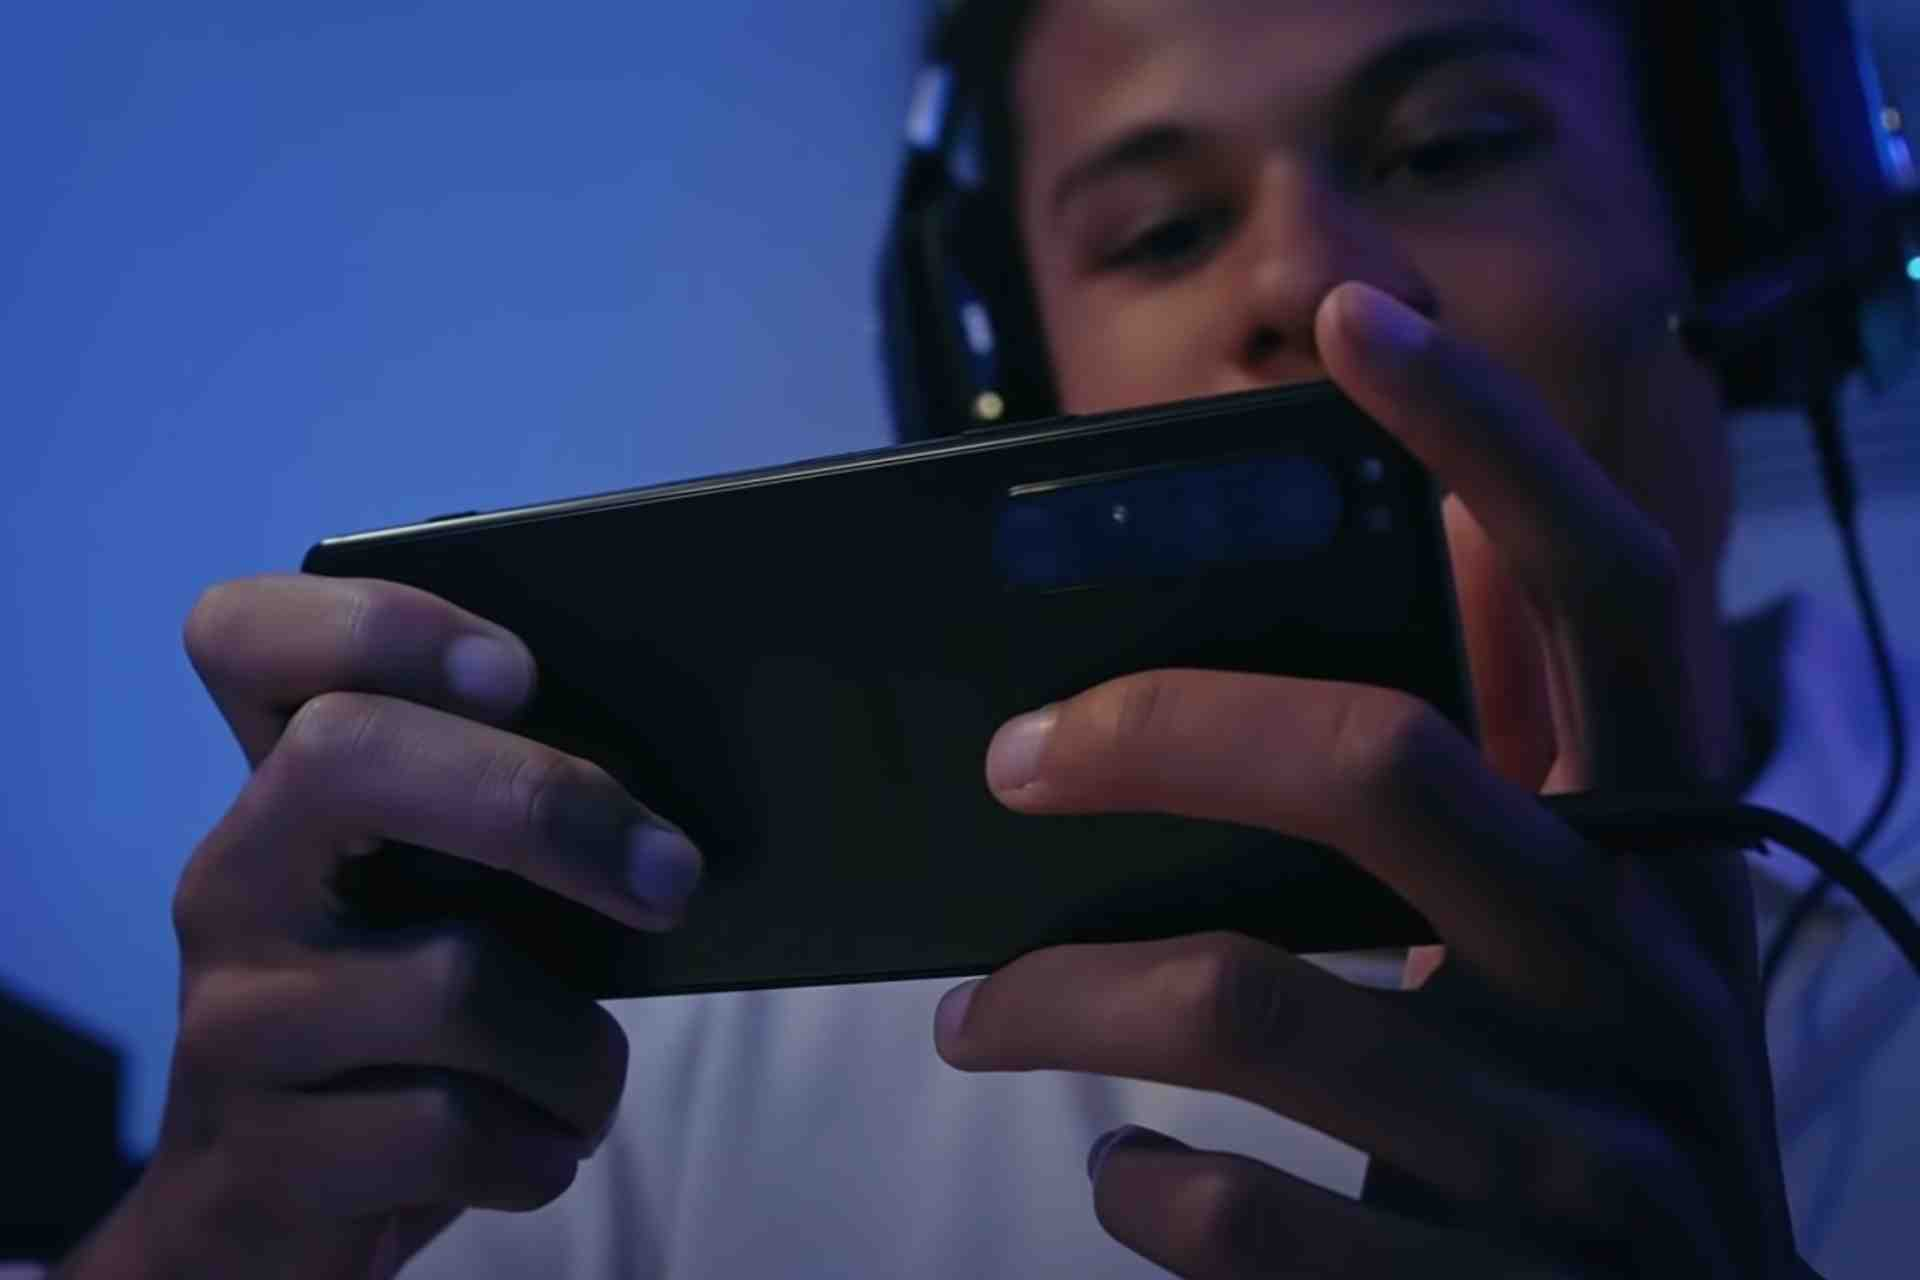 Sony Xperia 1 iii has a 4500 mAh battery, and gives a screen on time of 4-5 hours of video playback and around 4 hours of gaming time with a full charge.